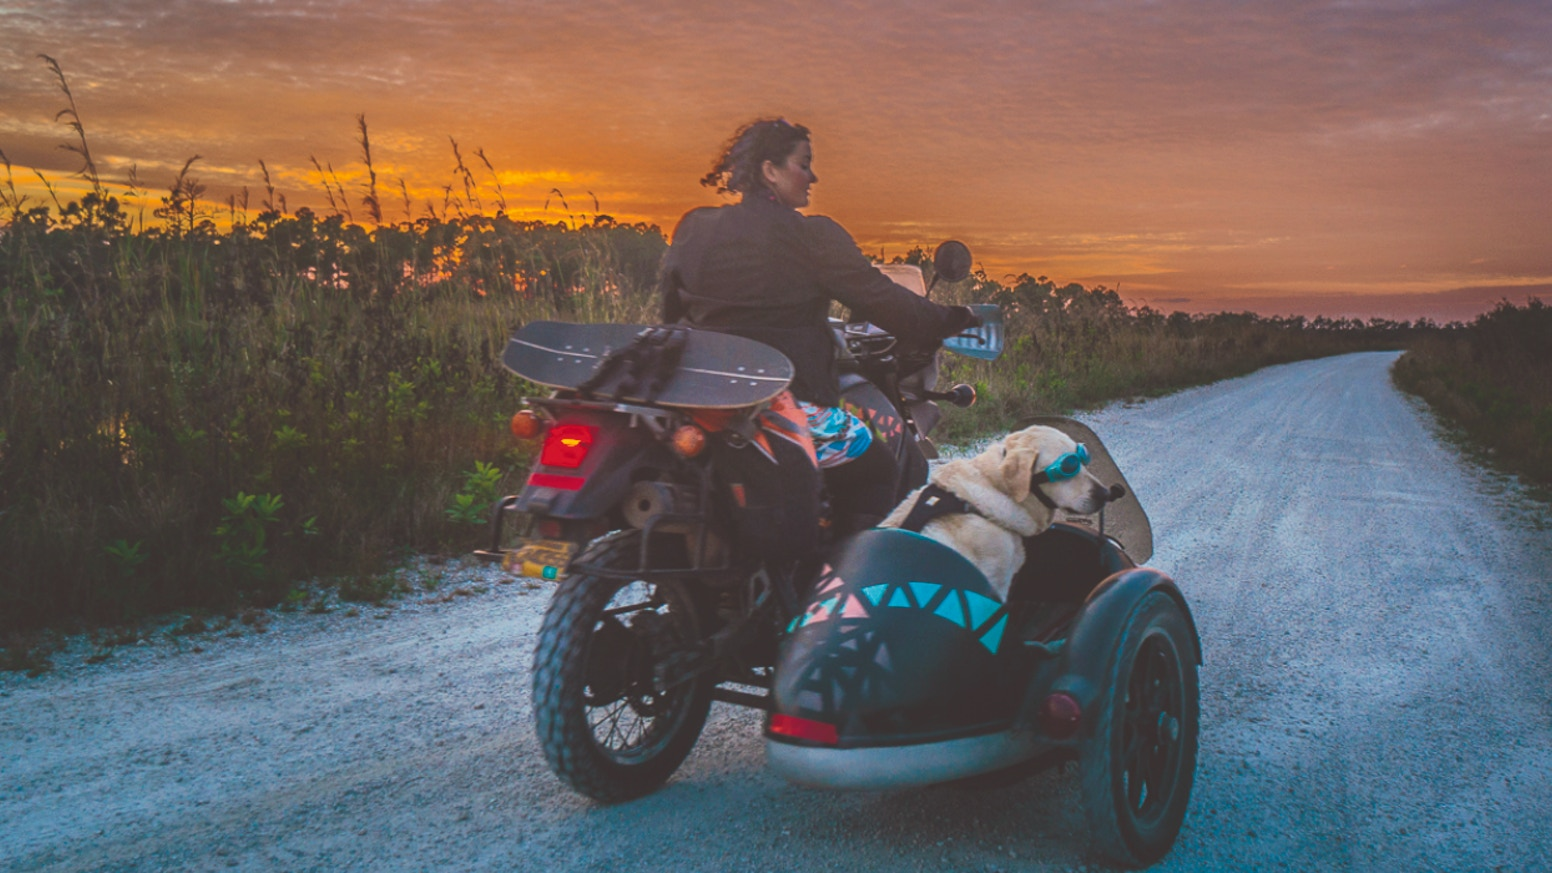 Operation Moto Dog: A Sidecar Adventure - BOOK & FILM by Mallory